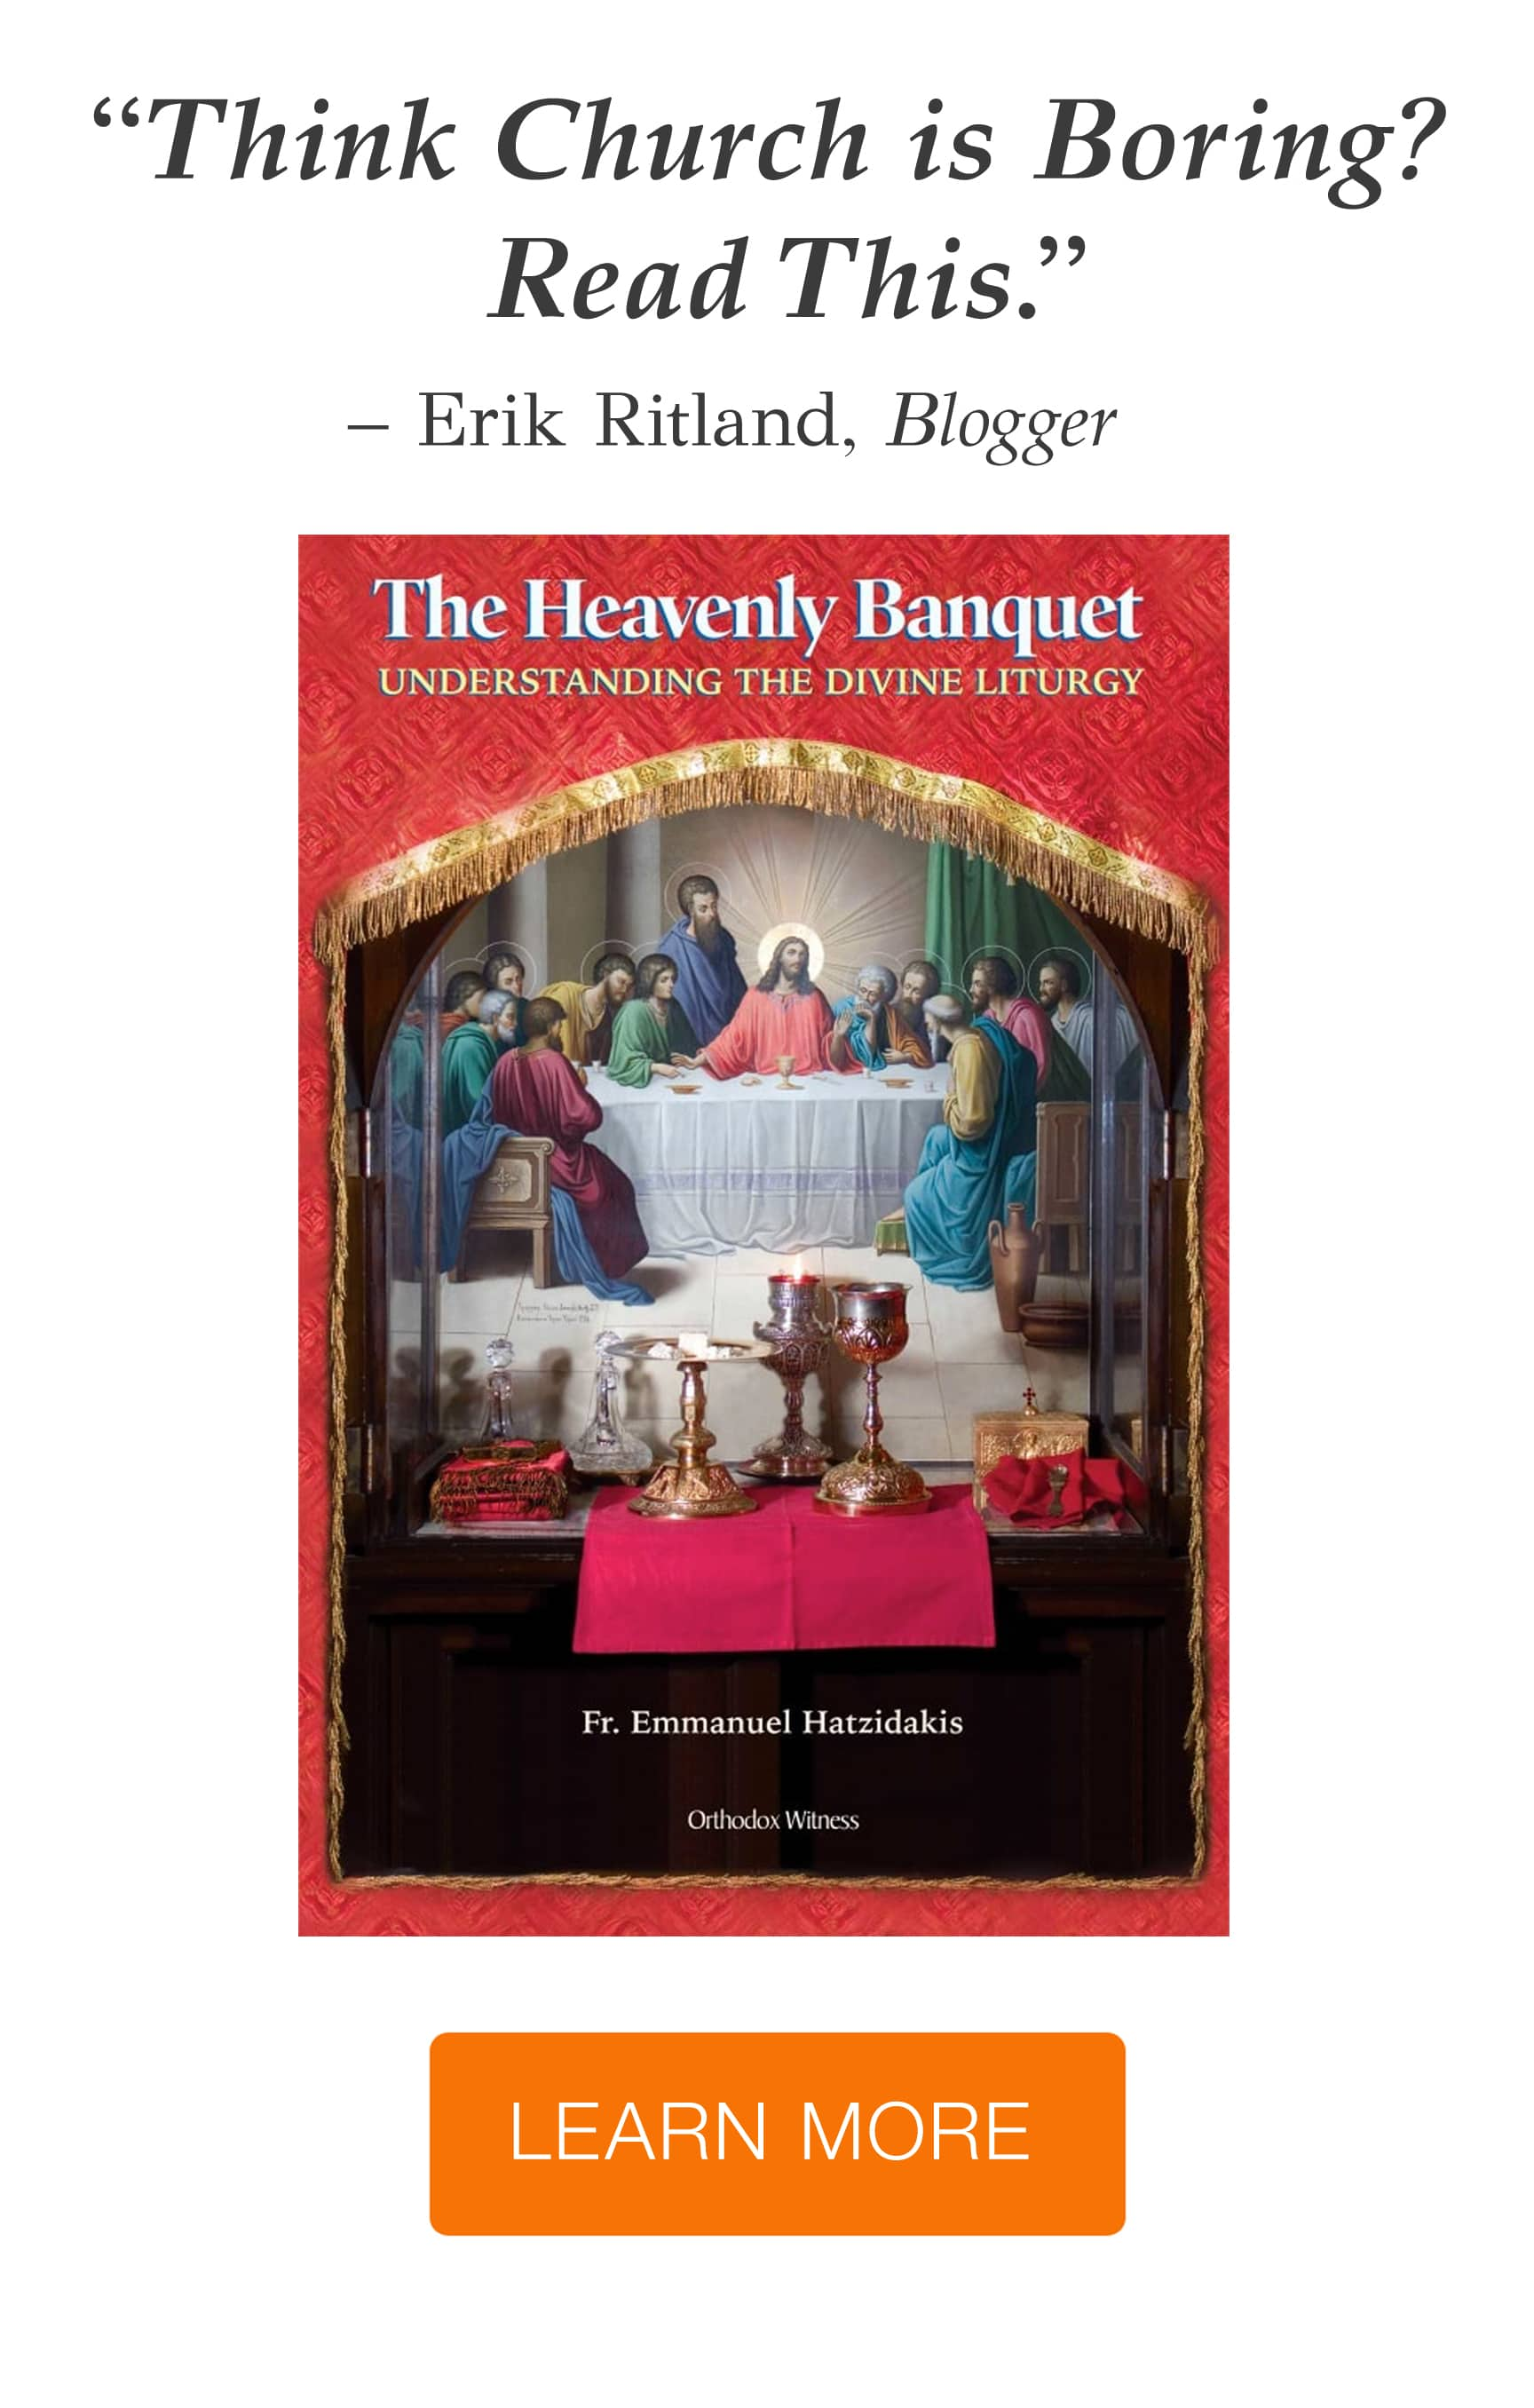 The Heavenly Banquet